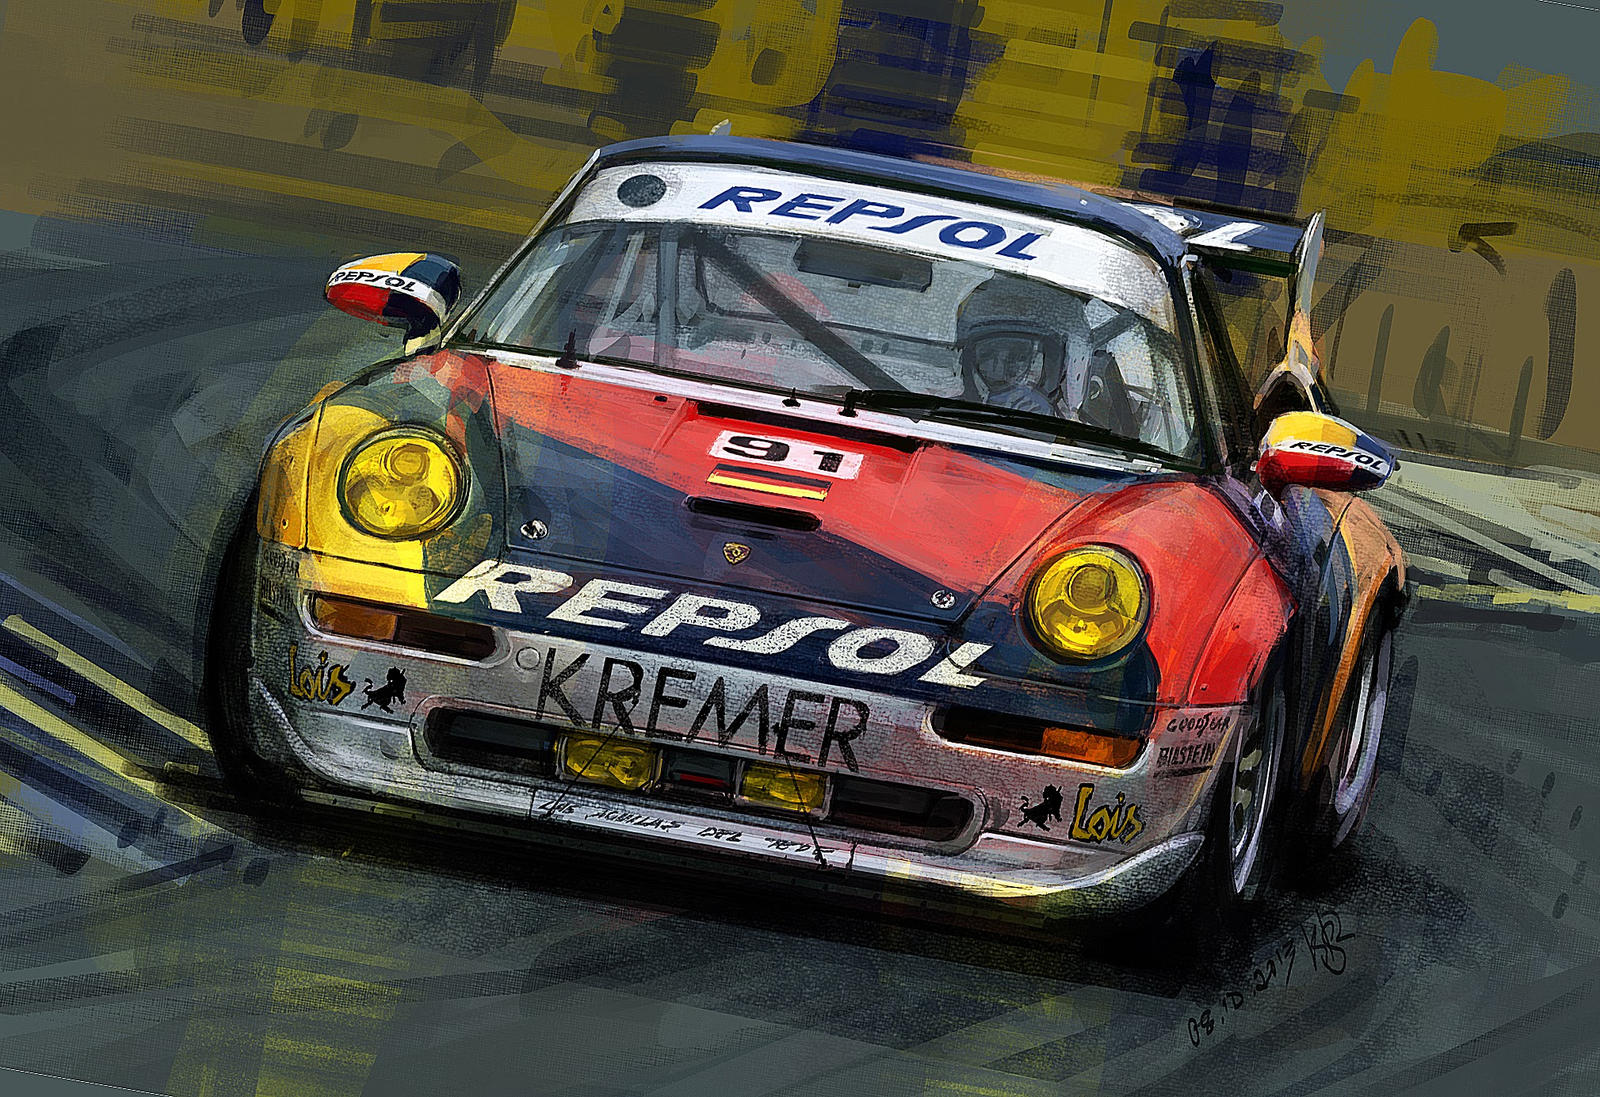 porsche 911 gt2 1995 le mans 2013 by ksr by rizov on deviantart. Black Bedroom Furniture Sets. Home Design Ideas